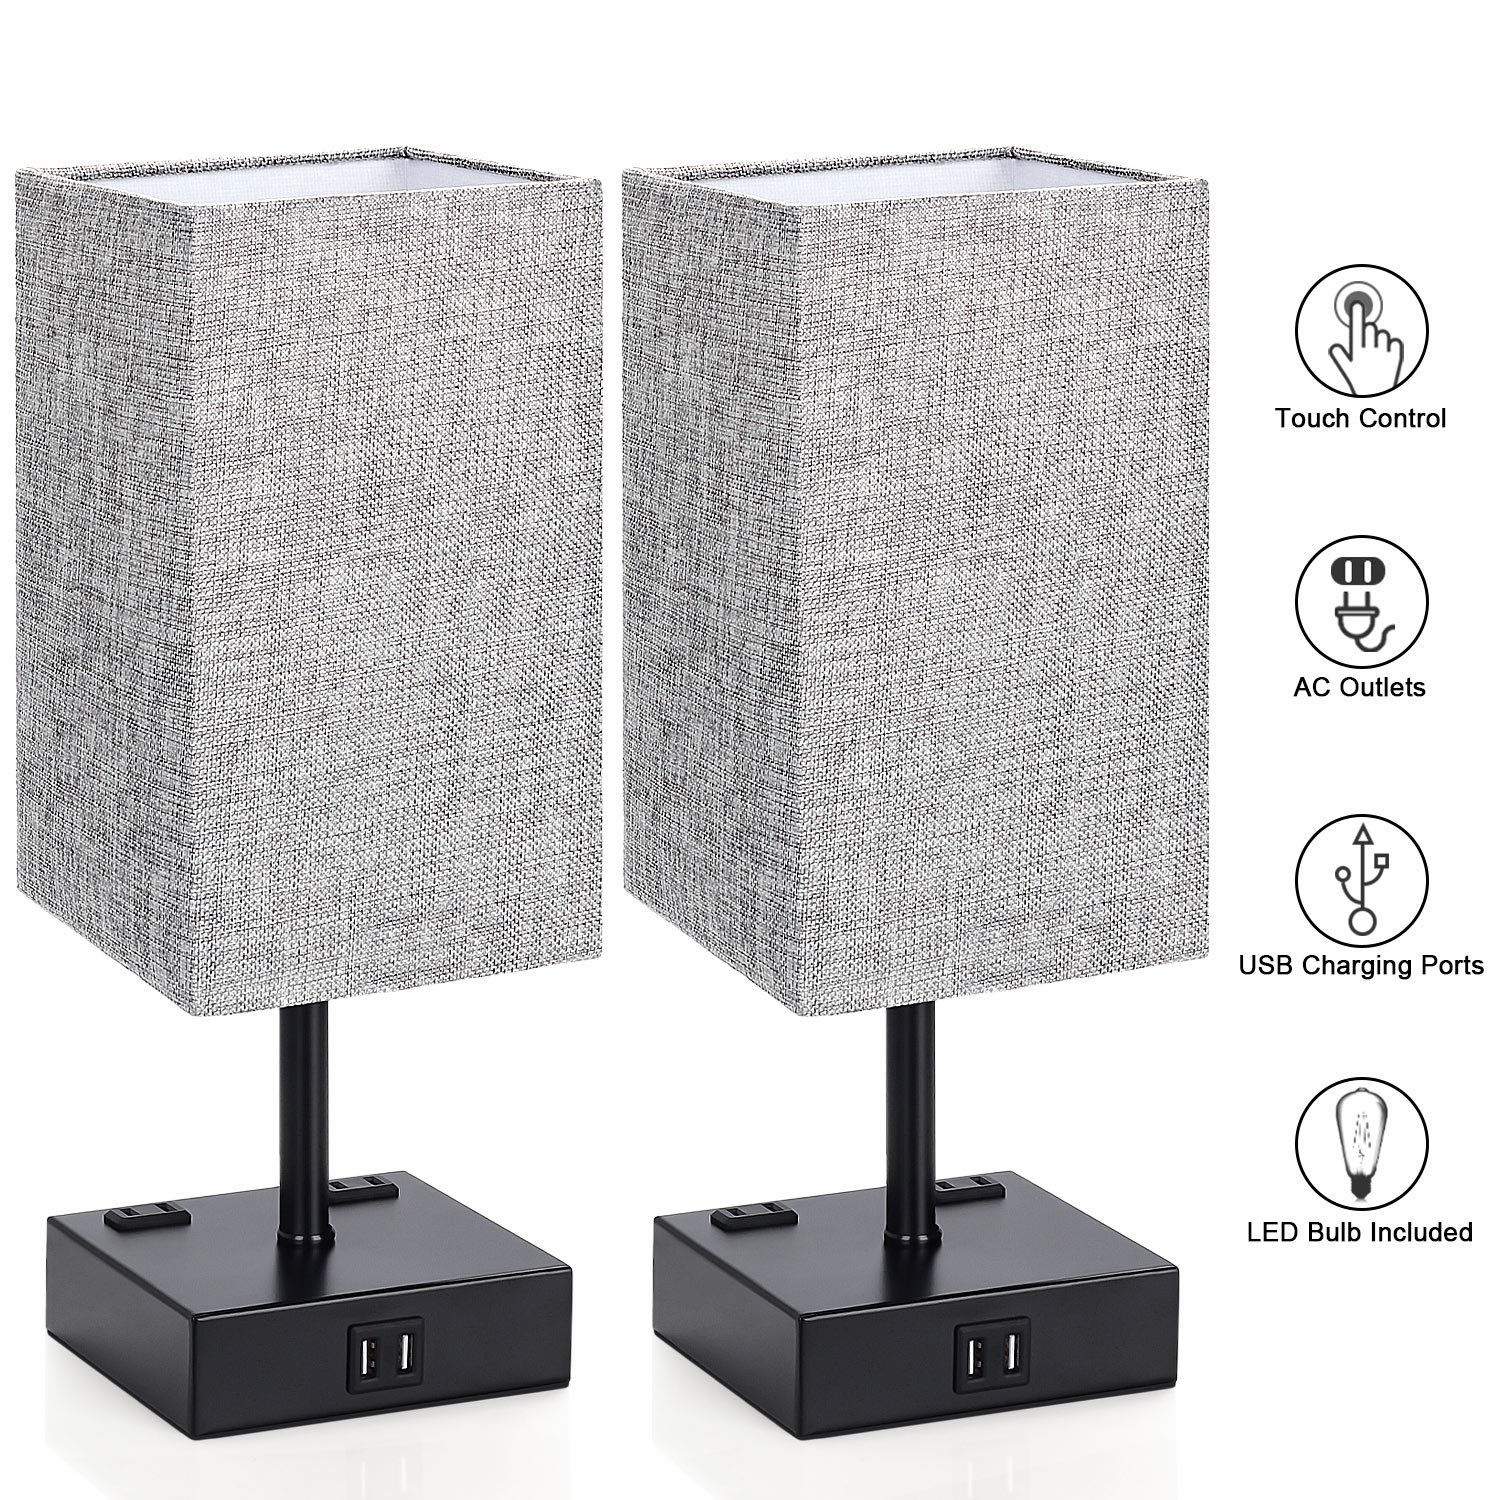 Touch Control Table Lamp 3 Way Bedside Desk Lamps Modern Night Light Lamp